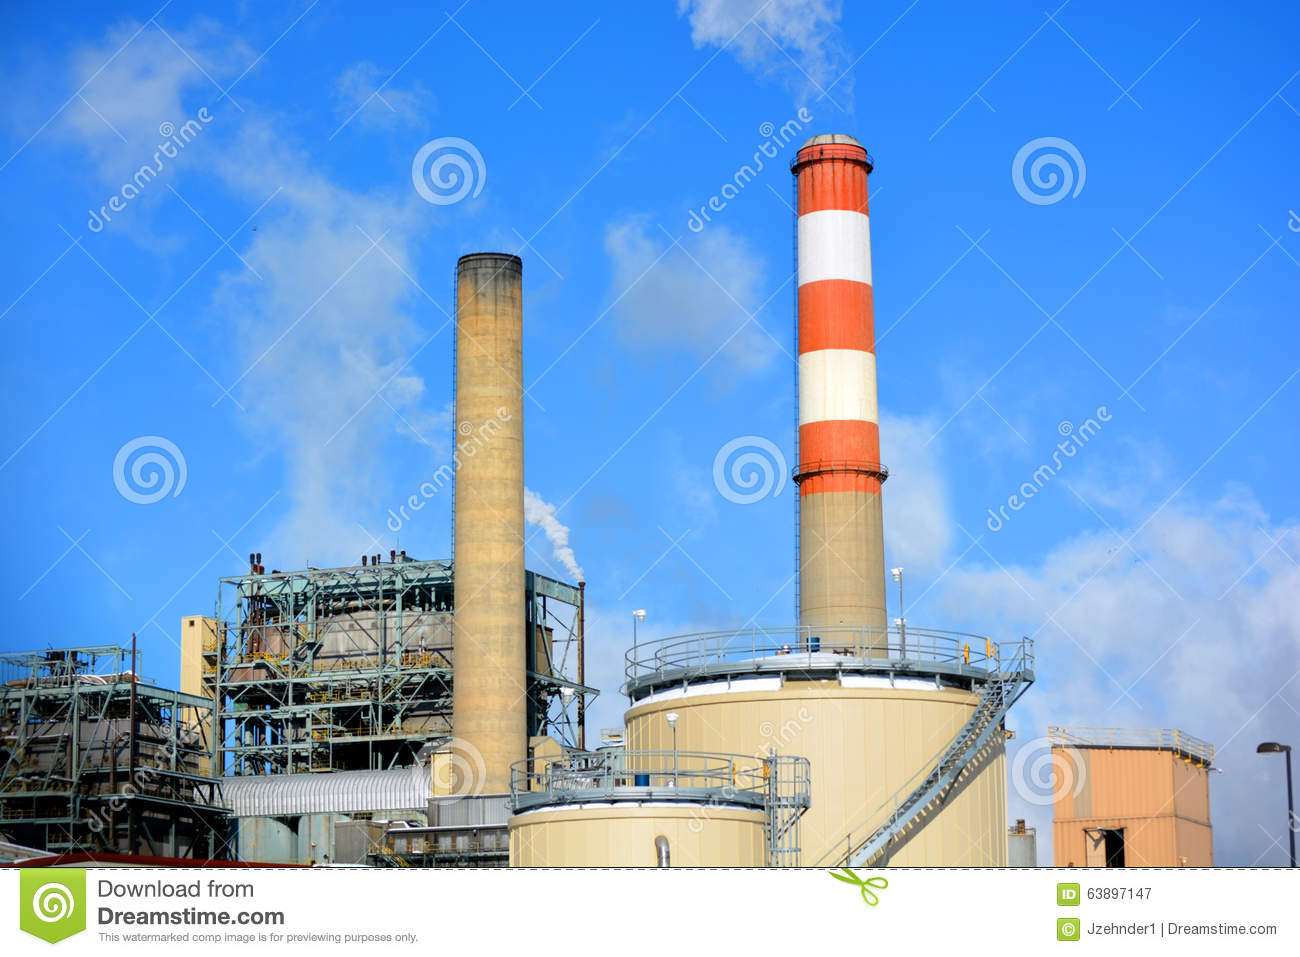 Fossil Fuel Power Plant : Coal fossil fuel power plant smokestack with red and white